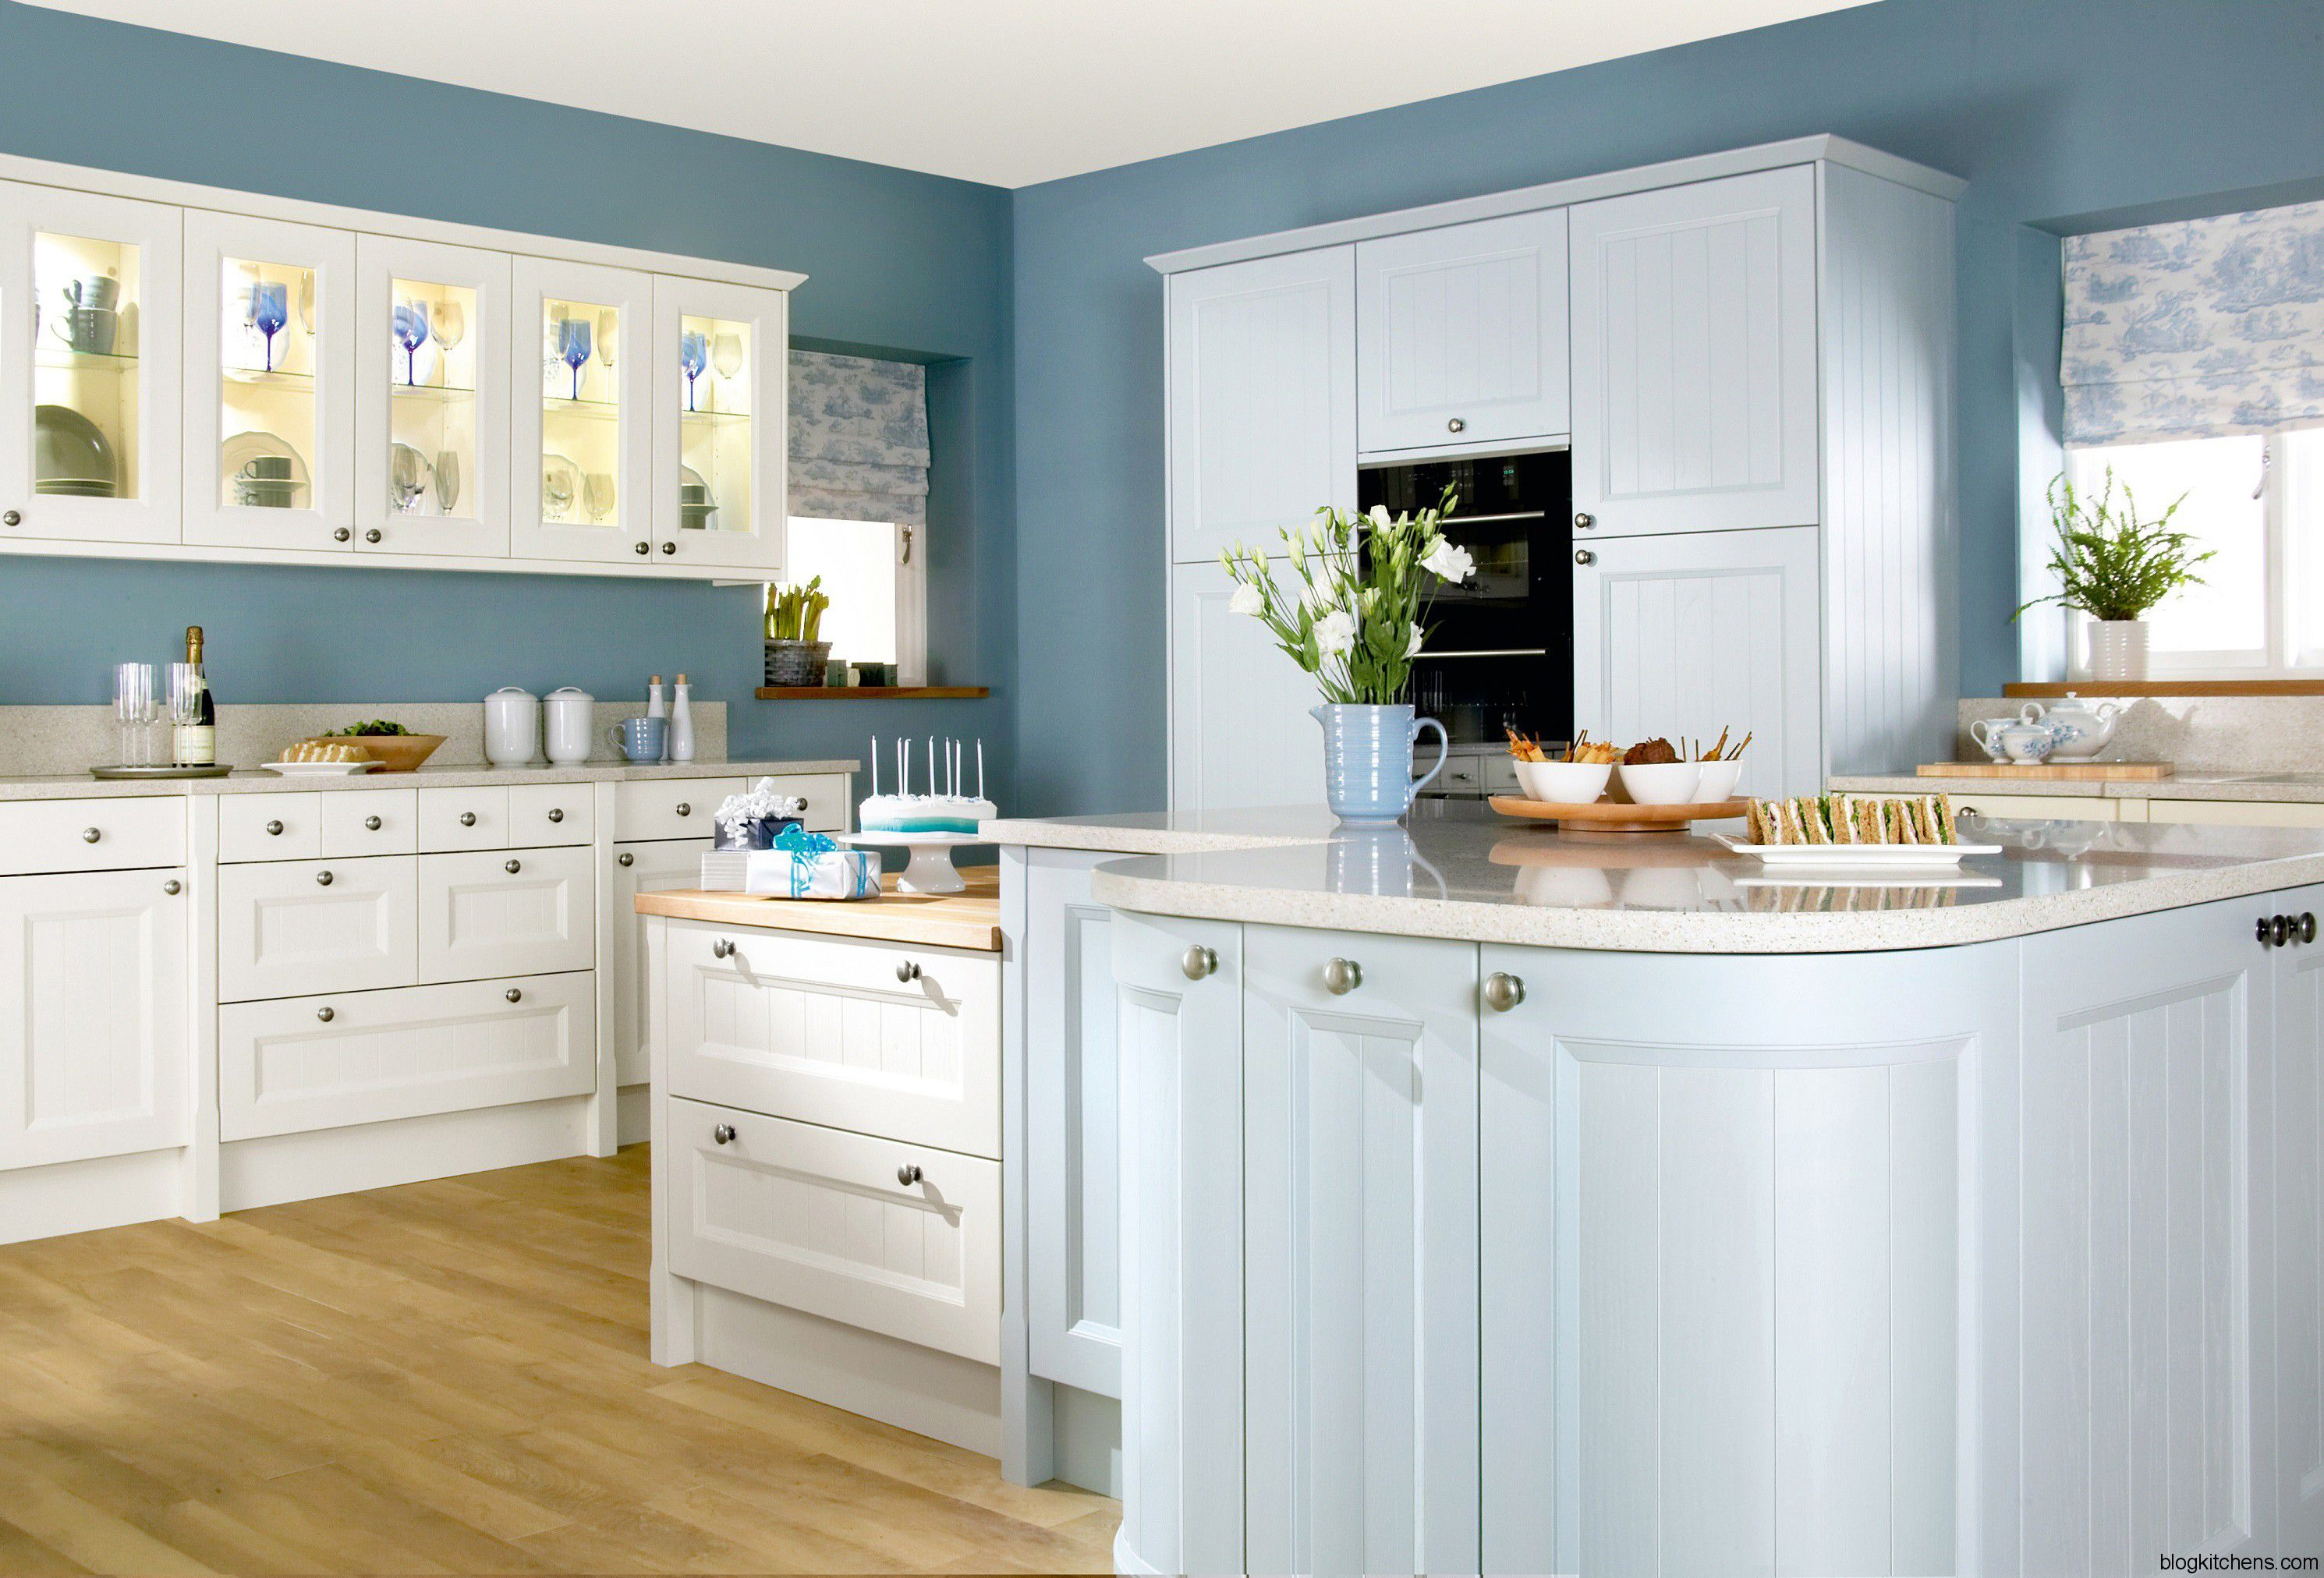 Adorable Design Of Kitchen Areas With Brown Wooden Floor And White And Blue Kitchen Cabinets Ideas